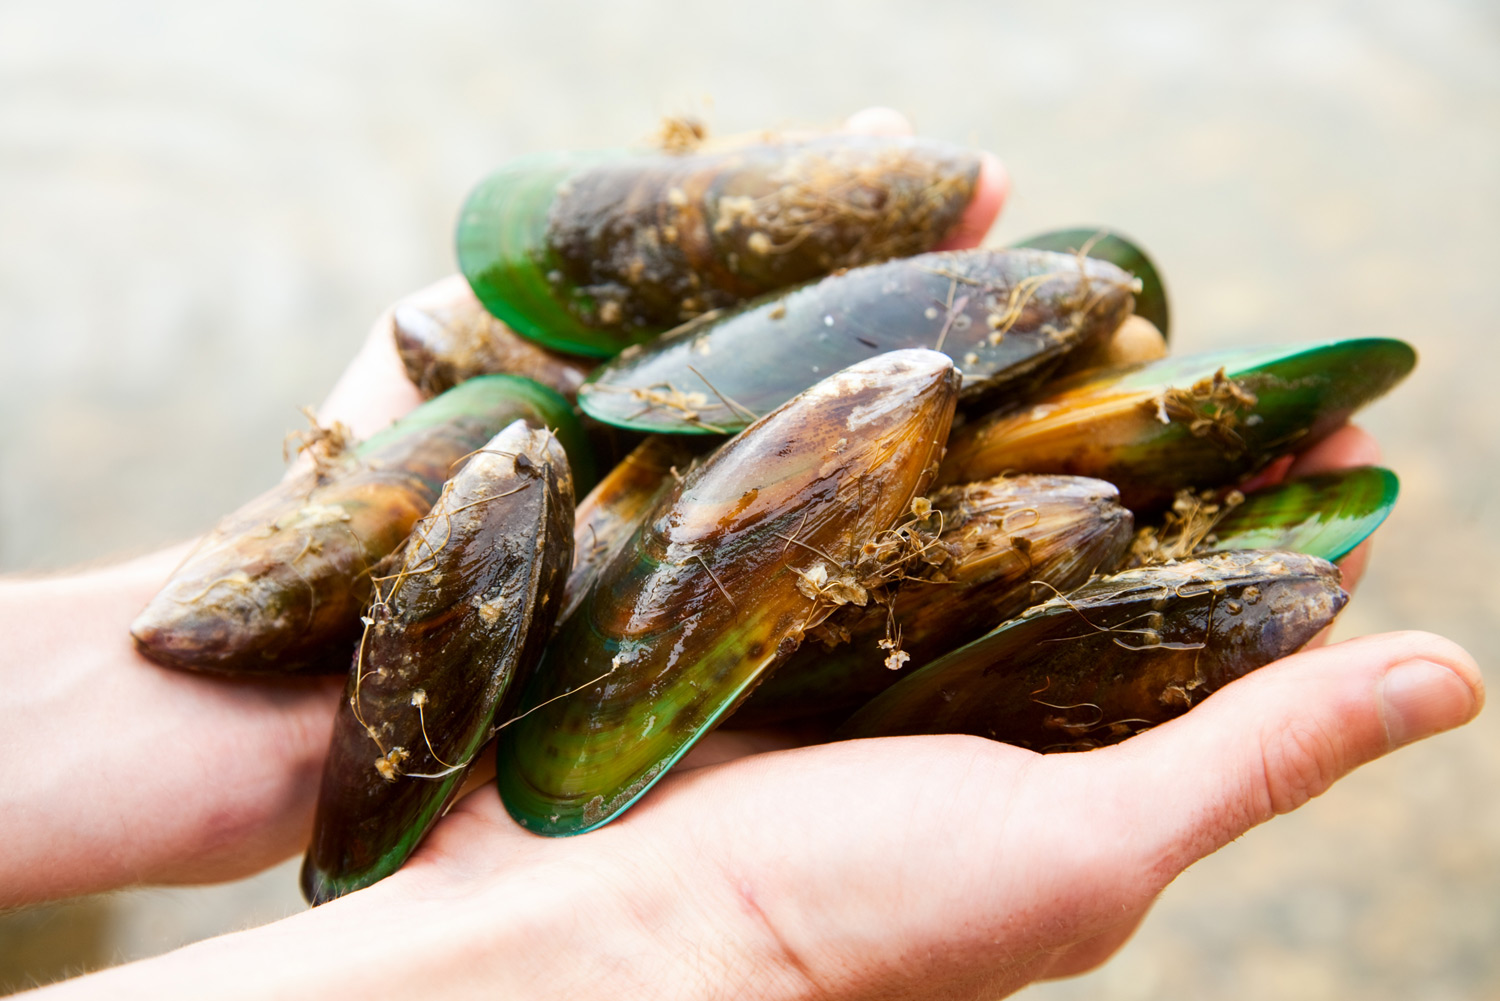 Anyone can snorkel and catch fresh clams, crayfish and paua of the Marlborough coast.